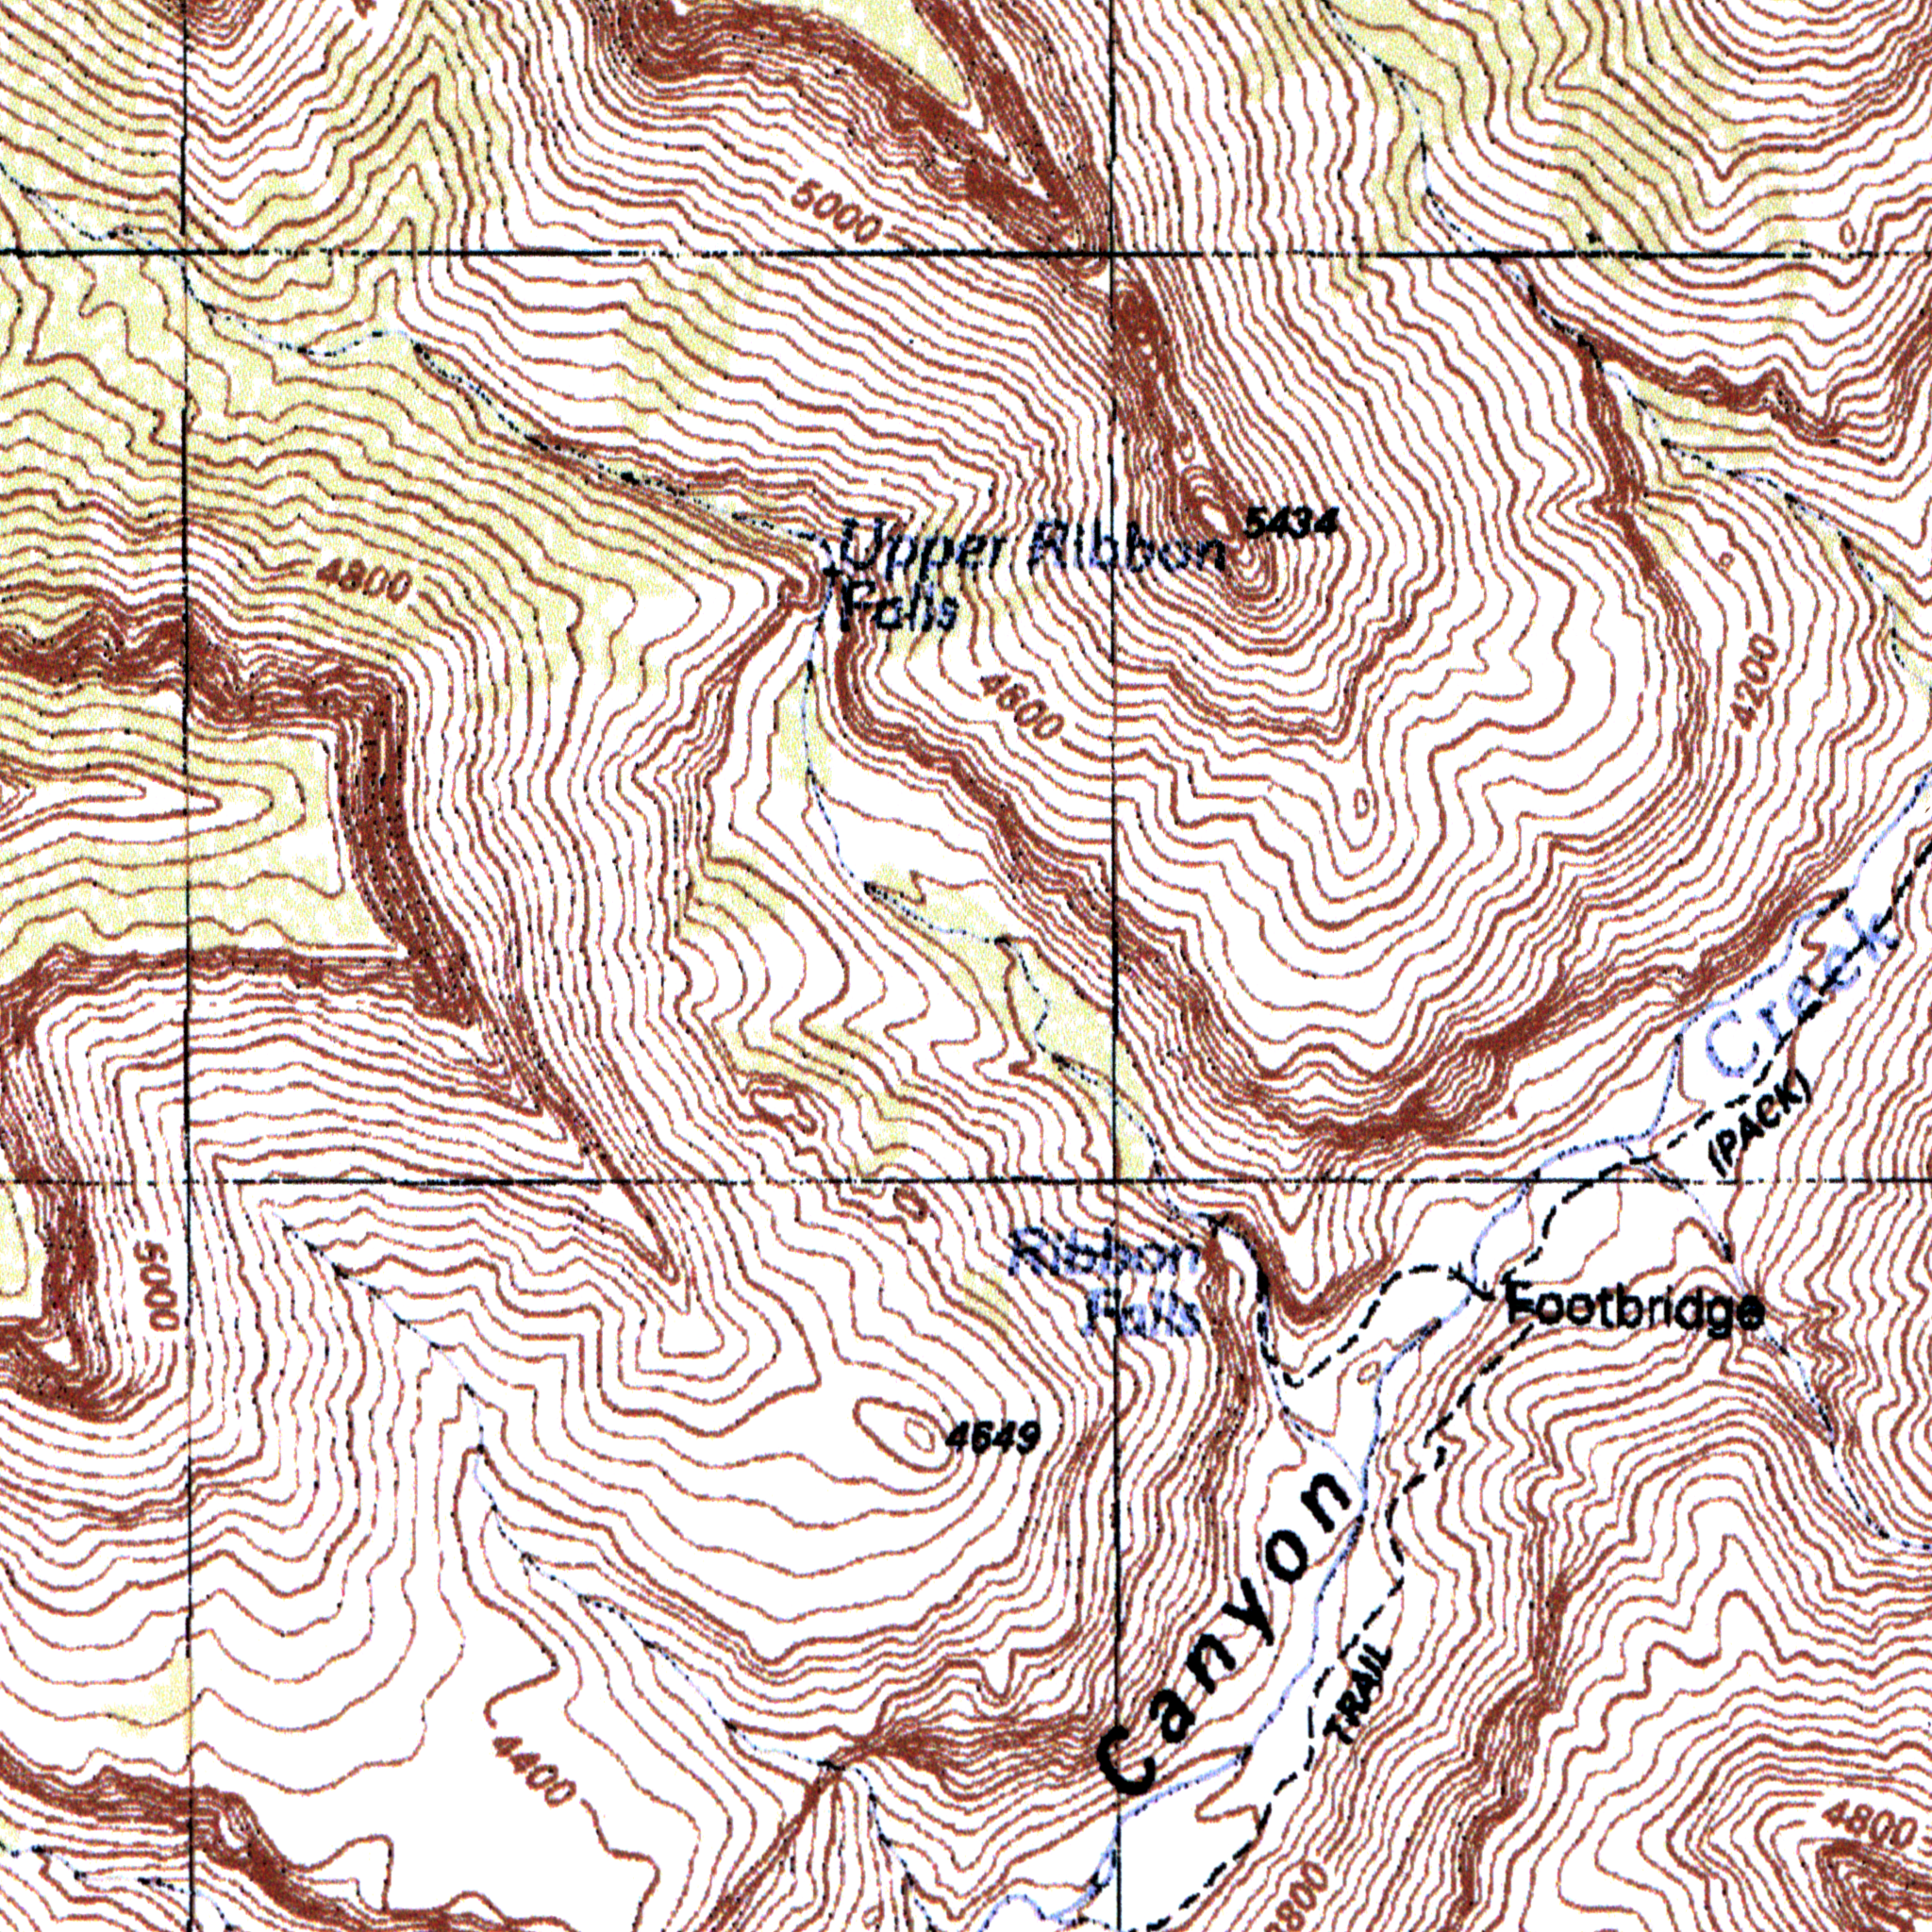 topographic map reviews with Maps on Maps in addition Lo in addition Sheltowee Trace North Trail Map as well Anchor Chart Weathering Erosion Deposition 7195195 together with .